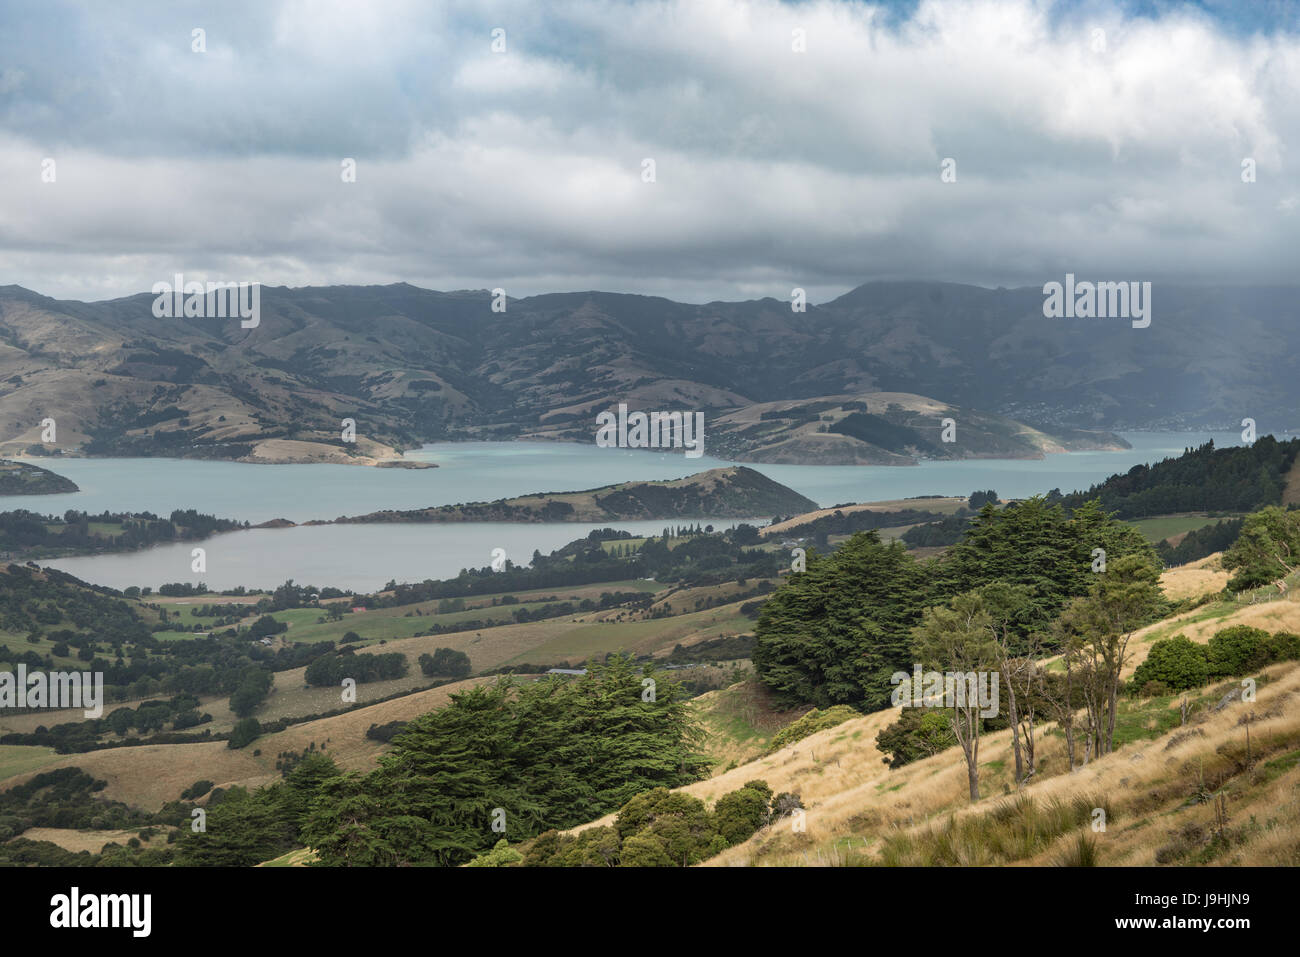 Akaroa, New Zealand - March 14, 2017: Akaroa Sound is inlet from Pacific ocean in remnants of a Miocene volcano. - Stock Image